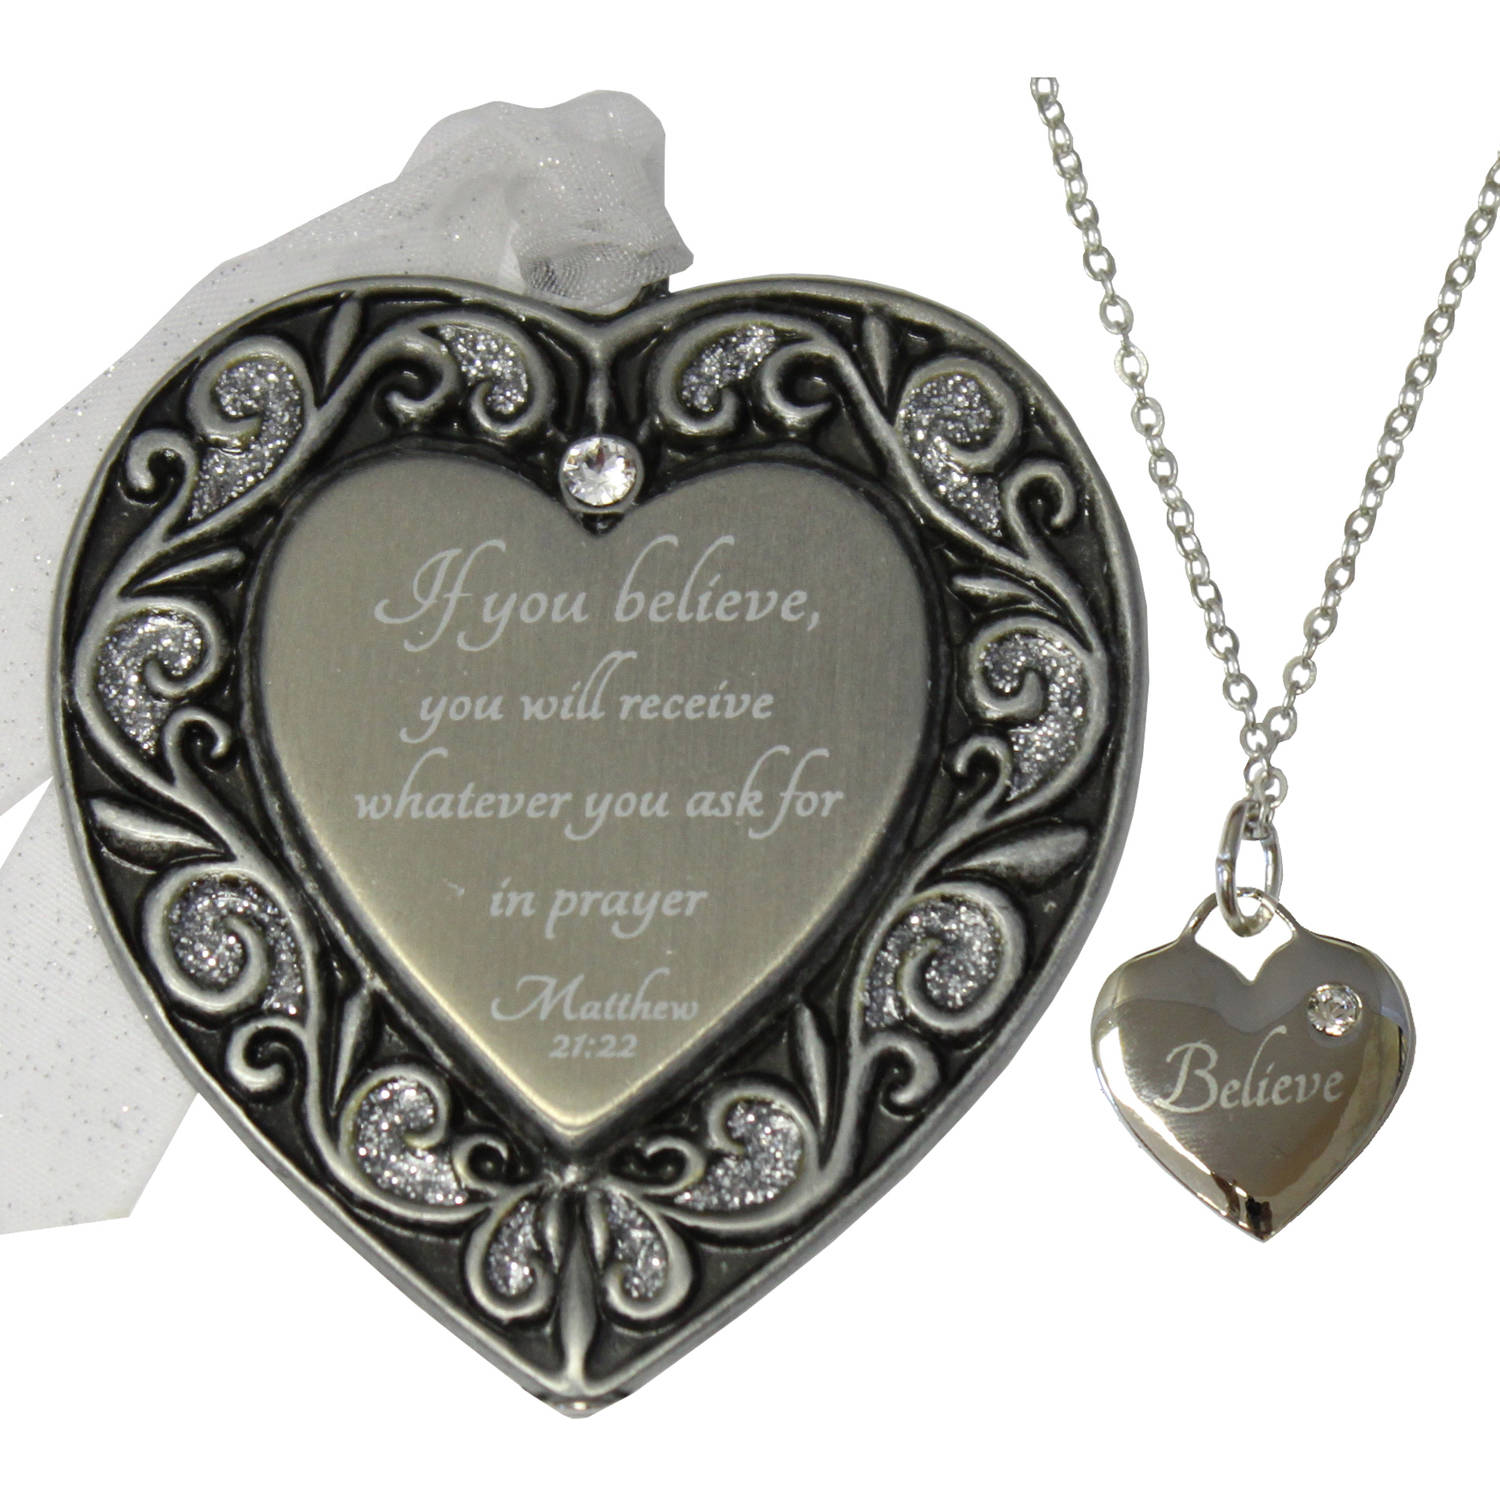 Gloria Duchin Believe Ornament and Necklace Set